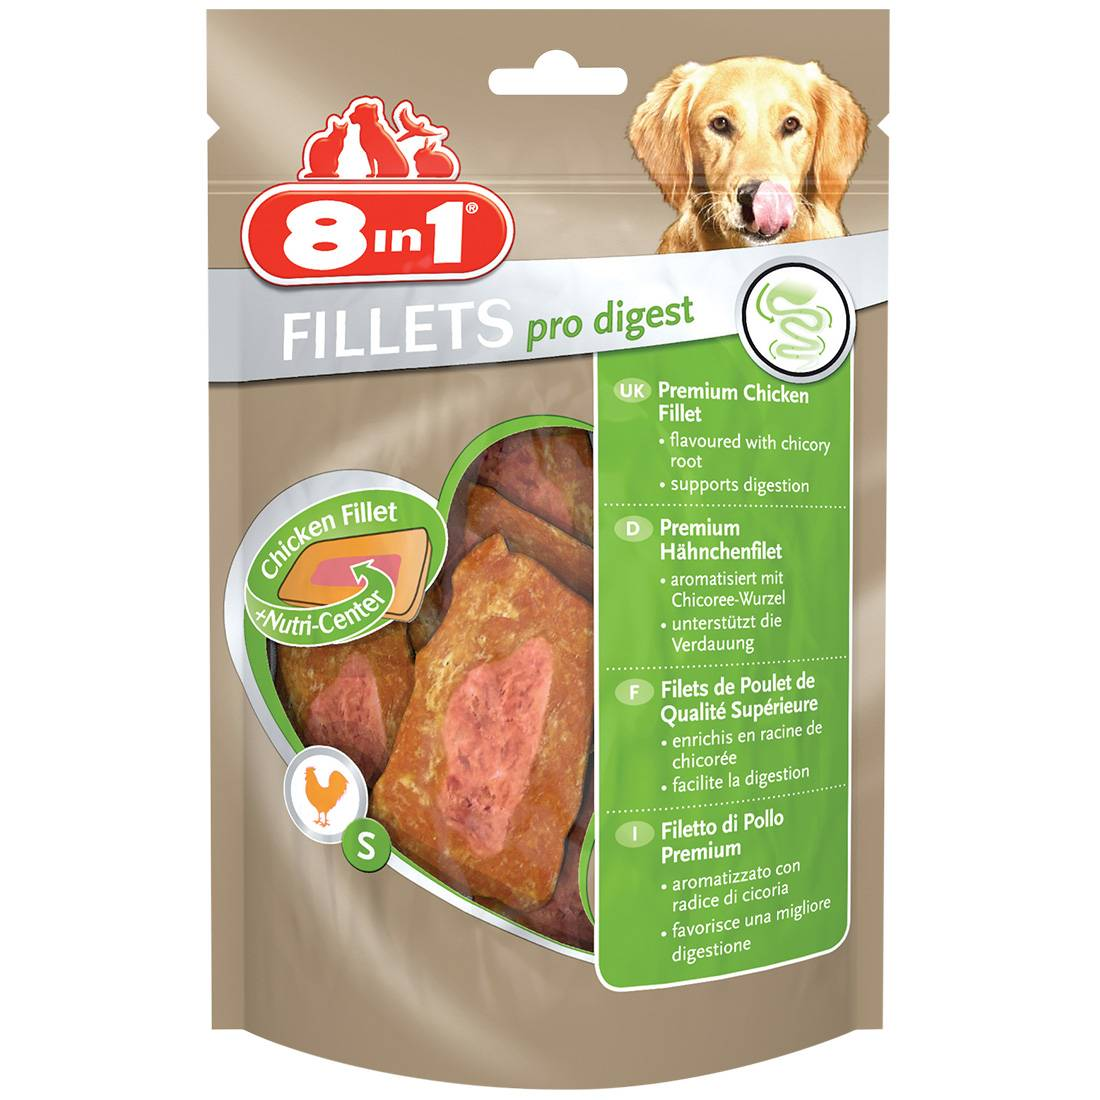 8in1 Fillets Pro Digest Taille : S